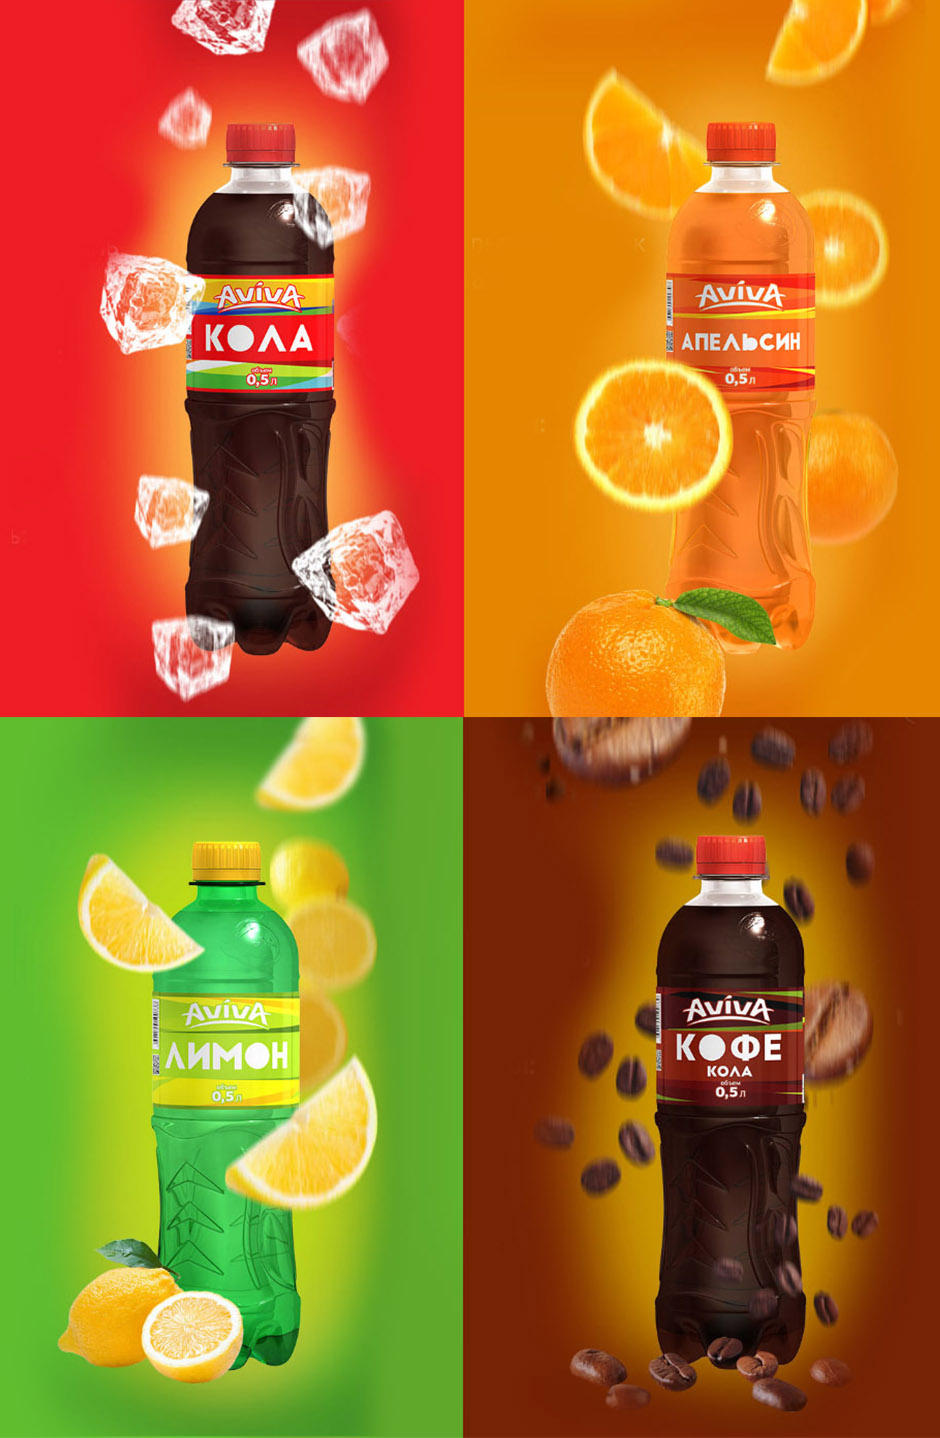 Soda label design, design этикетки для лимонада